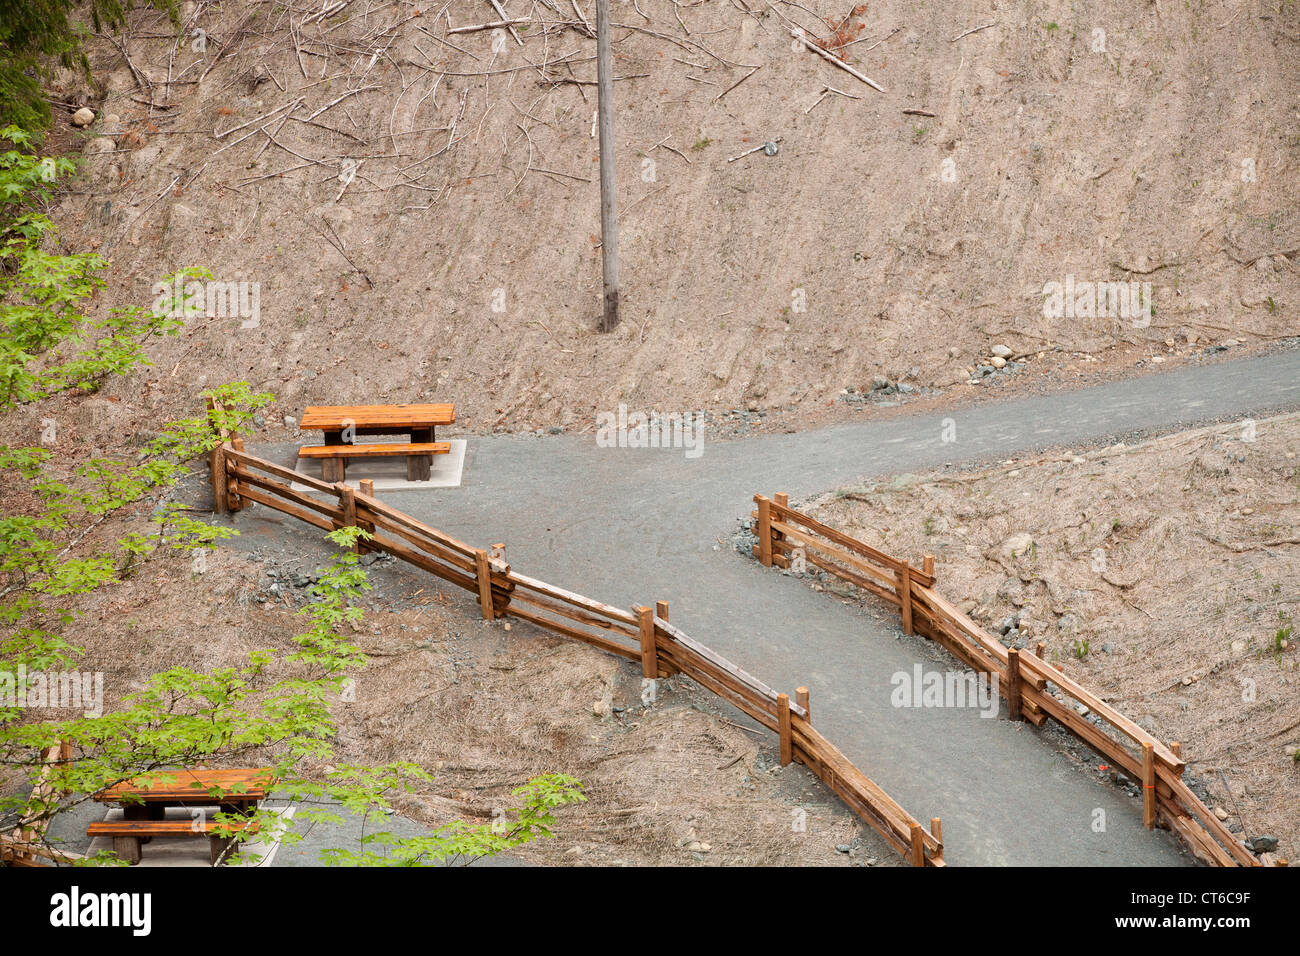 A picnic table sits on a lonely trail. - Stock Image